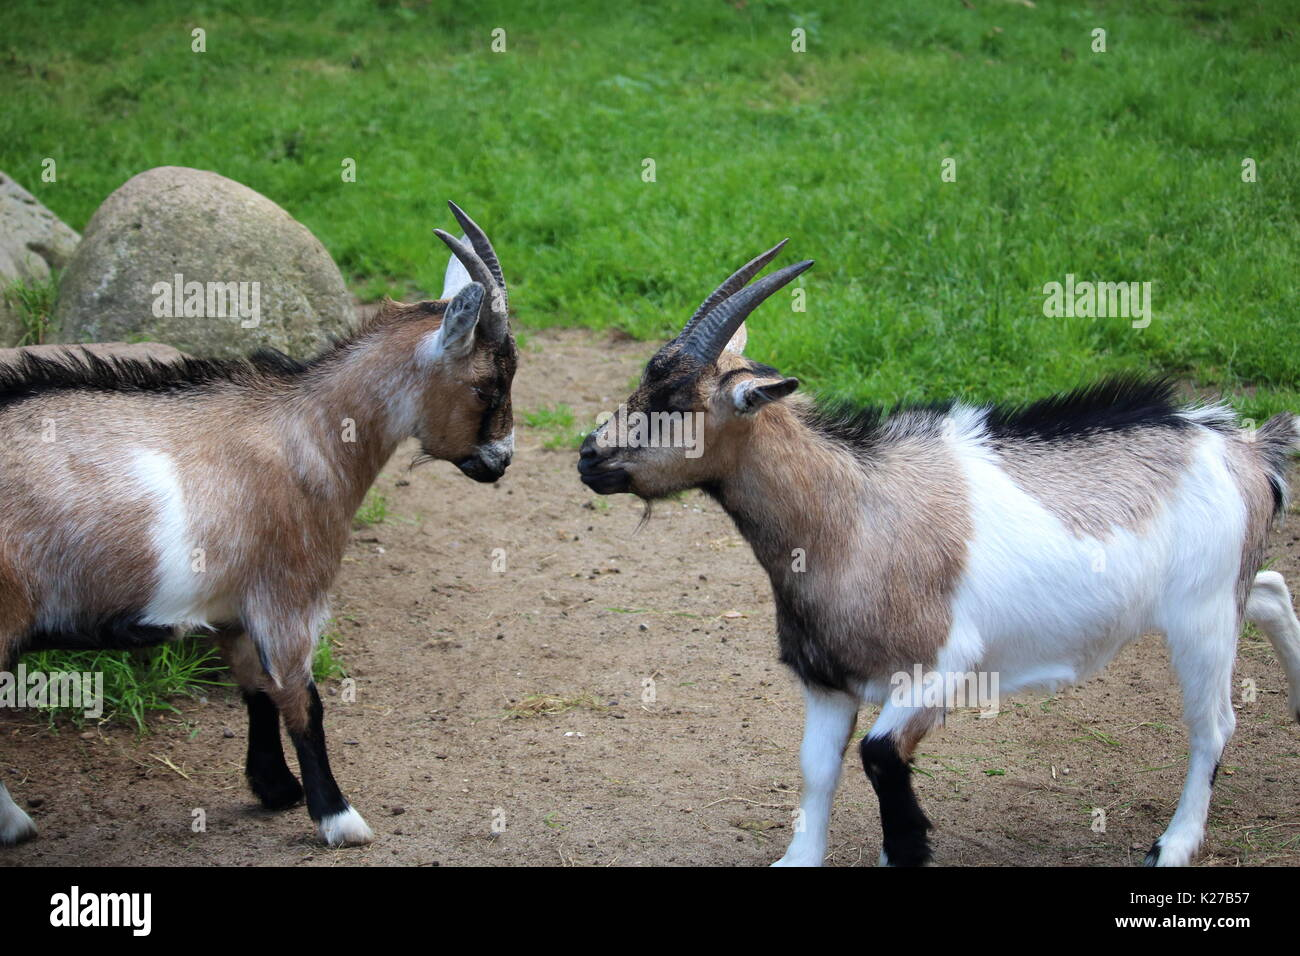 Two goats fighting - Stock Image